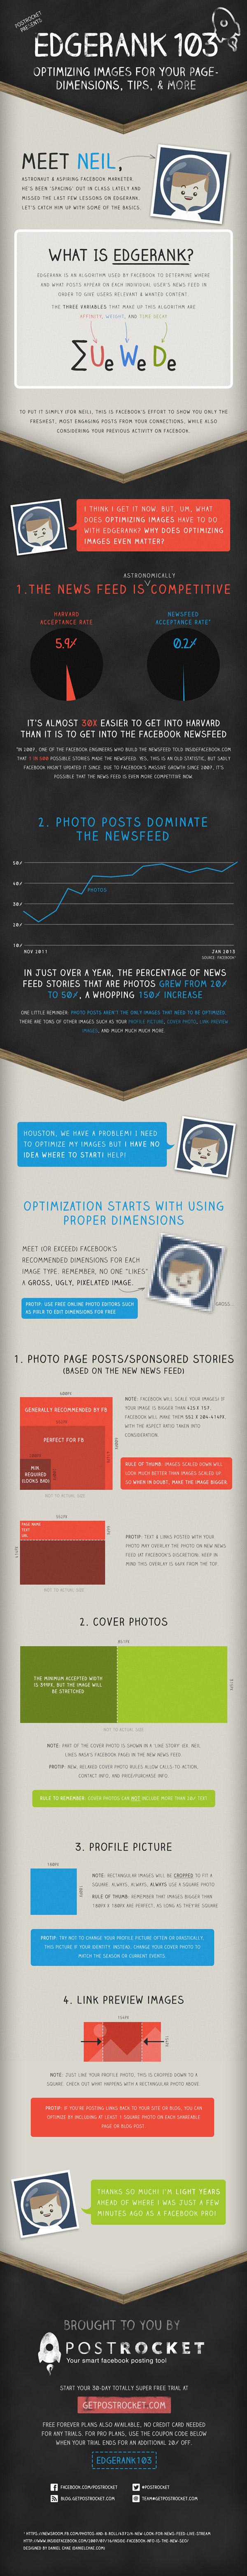 Photos Dominate Facebook's News Feed, Here Is How To Optimize Them - socialmouths